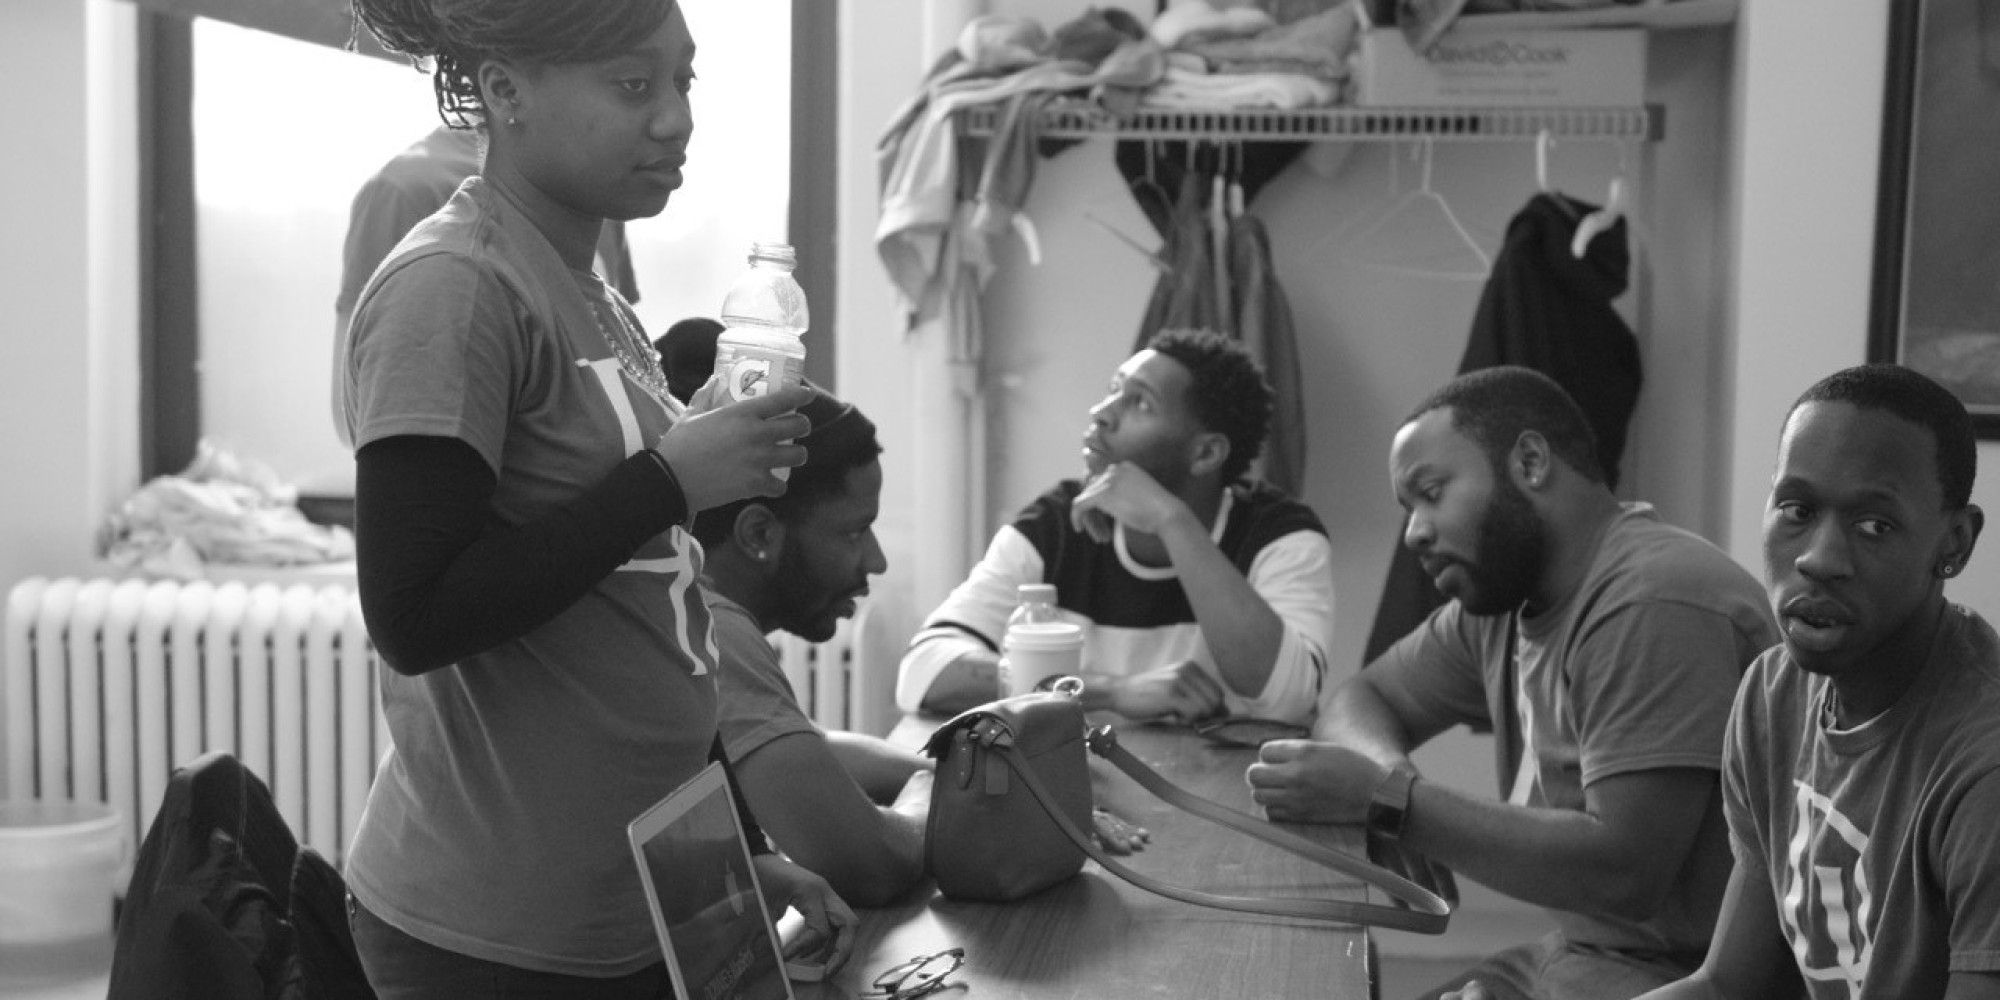 On a Tuesday late last month on Chicago's South Side, the staff of Donda's House, a unique artist development program for at-risk youth that was co-founded by Kanye West, gathered around a table to discuss an upcoming application period. ...